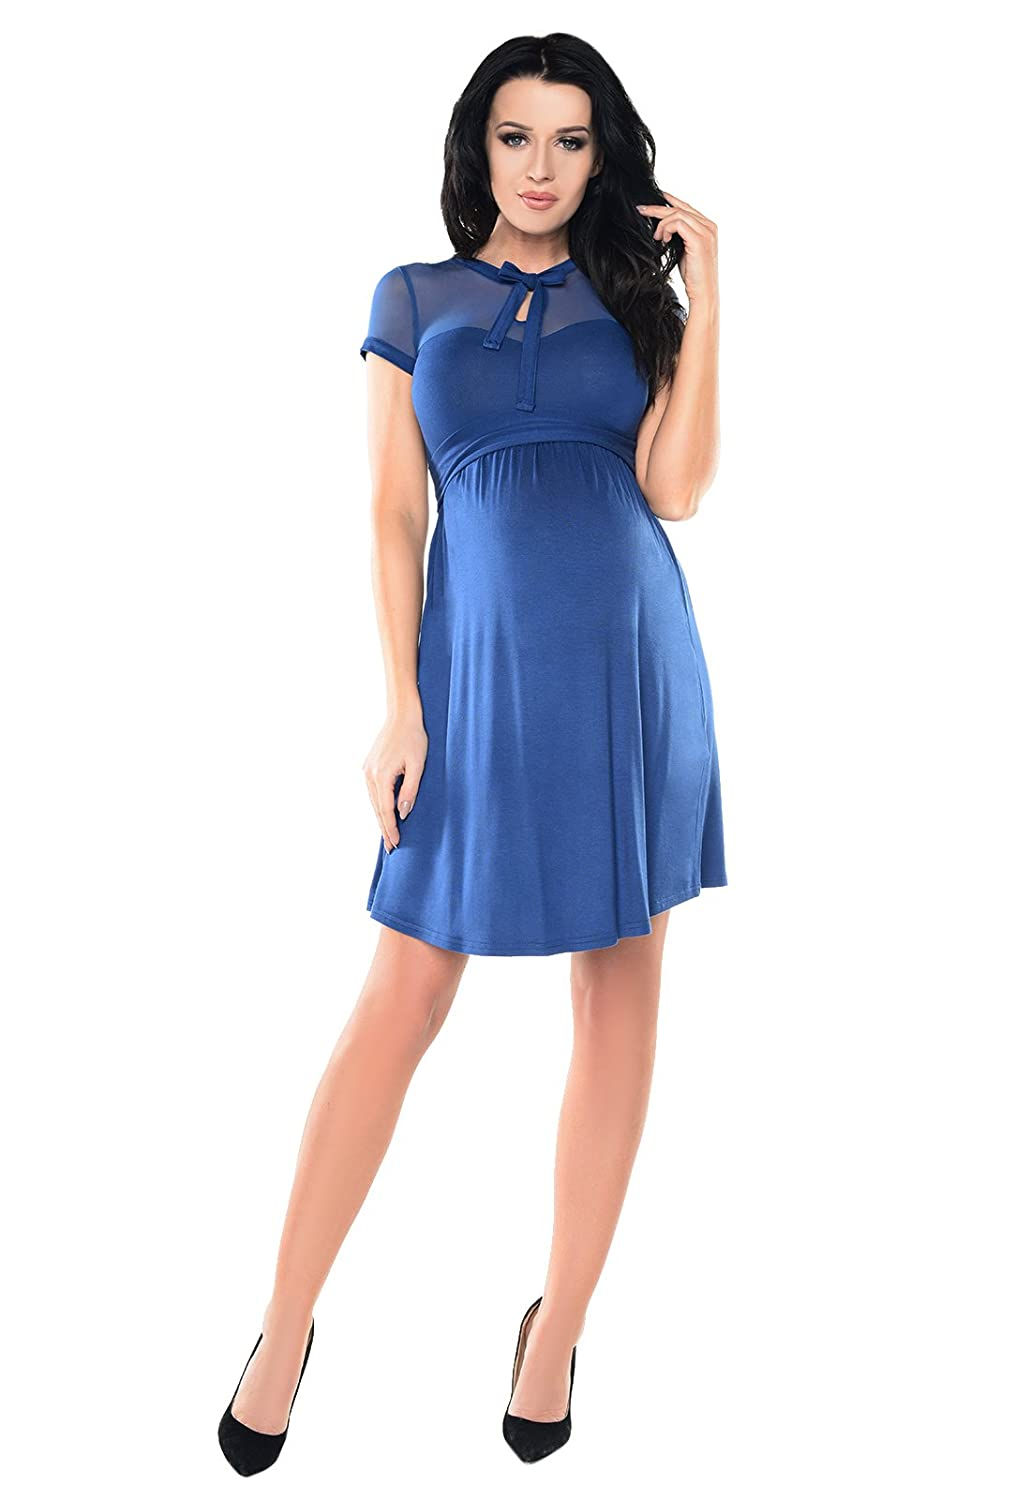 Purpless Maternity Short Sleeved A-Line Pregnancy Dress with Polka Dot Lace Panel D004